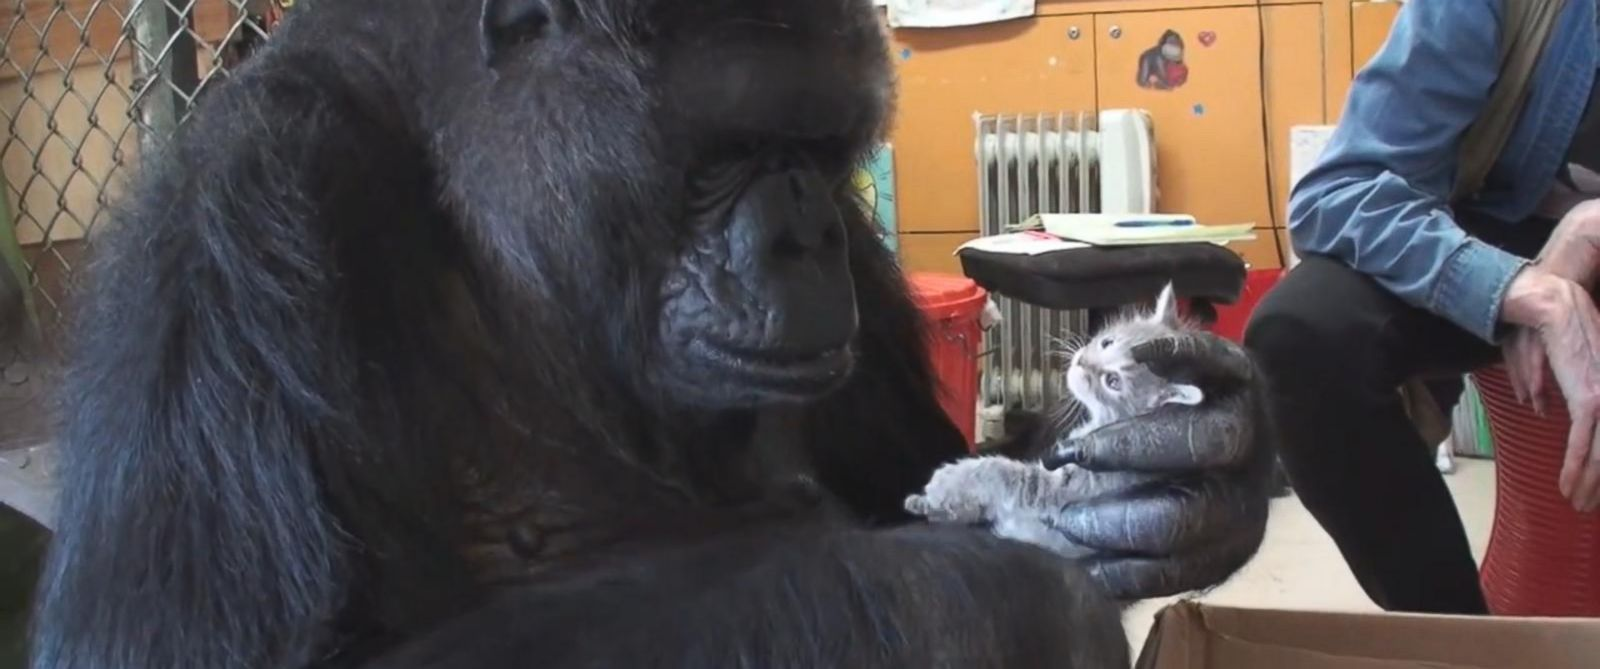 PHOTO: Gorilla known for her sign language abilities shows maternal instincts with kittens.